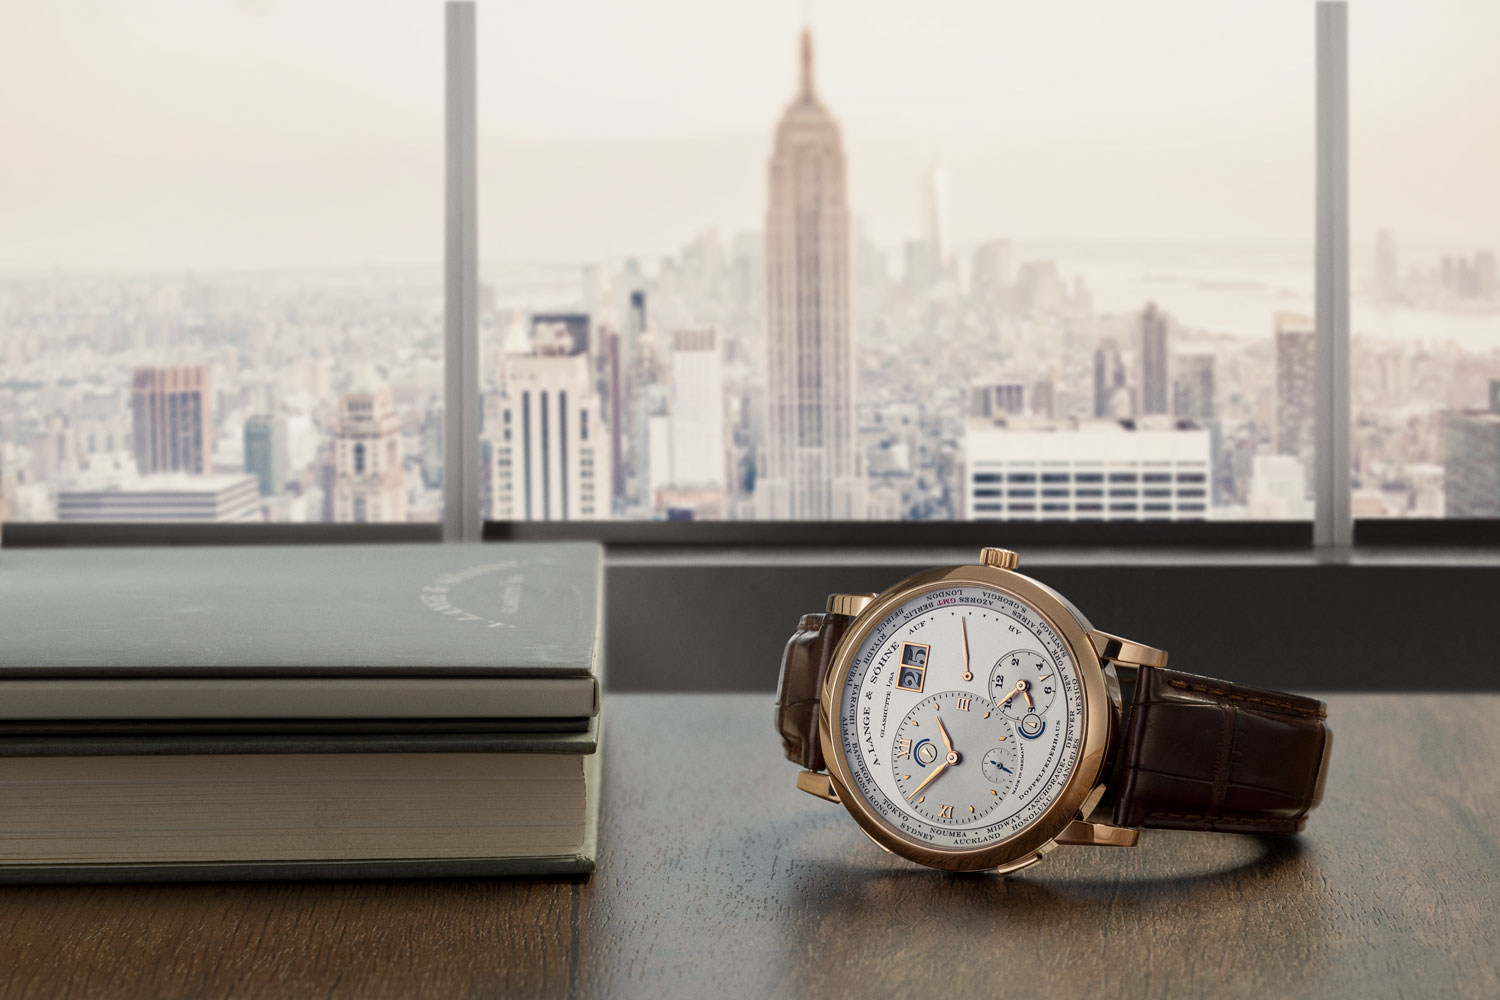 The Lange 1 Time Zone in pink gold set against New York City (Image © Revolution)